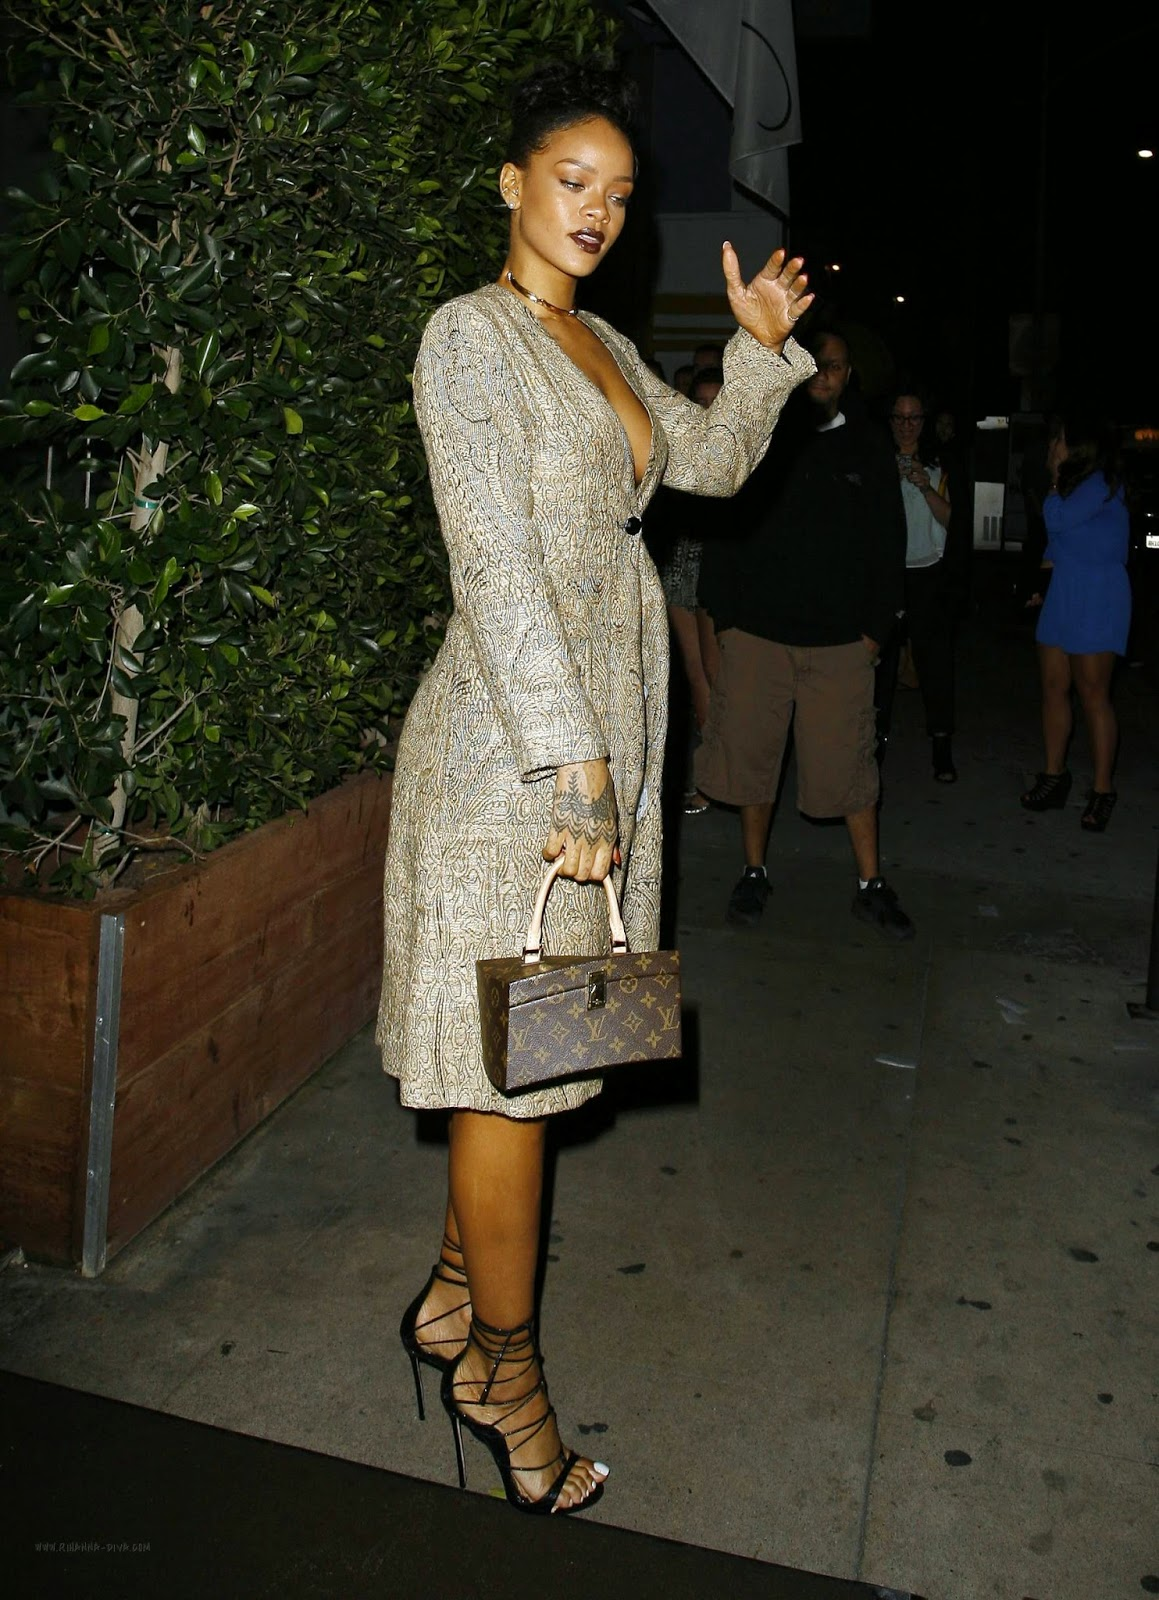 Singer, Actress, Fashion Designer @ Rihanna at Giorgio Baldi restaurant in L.A